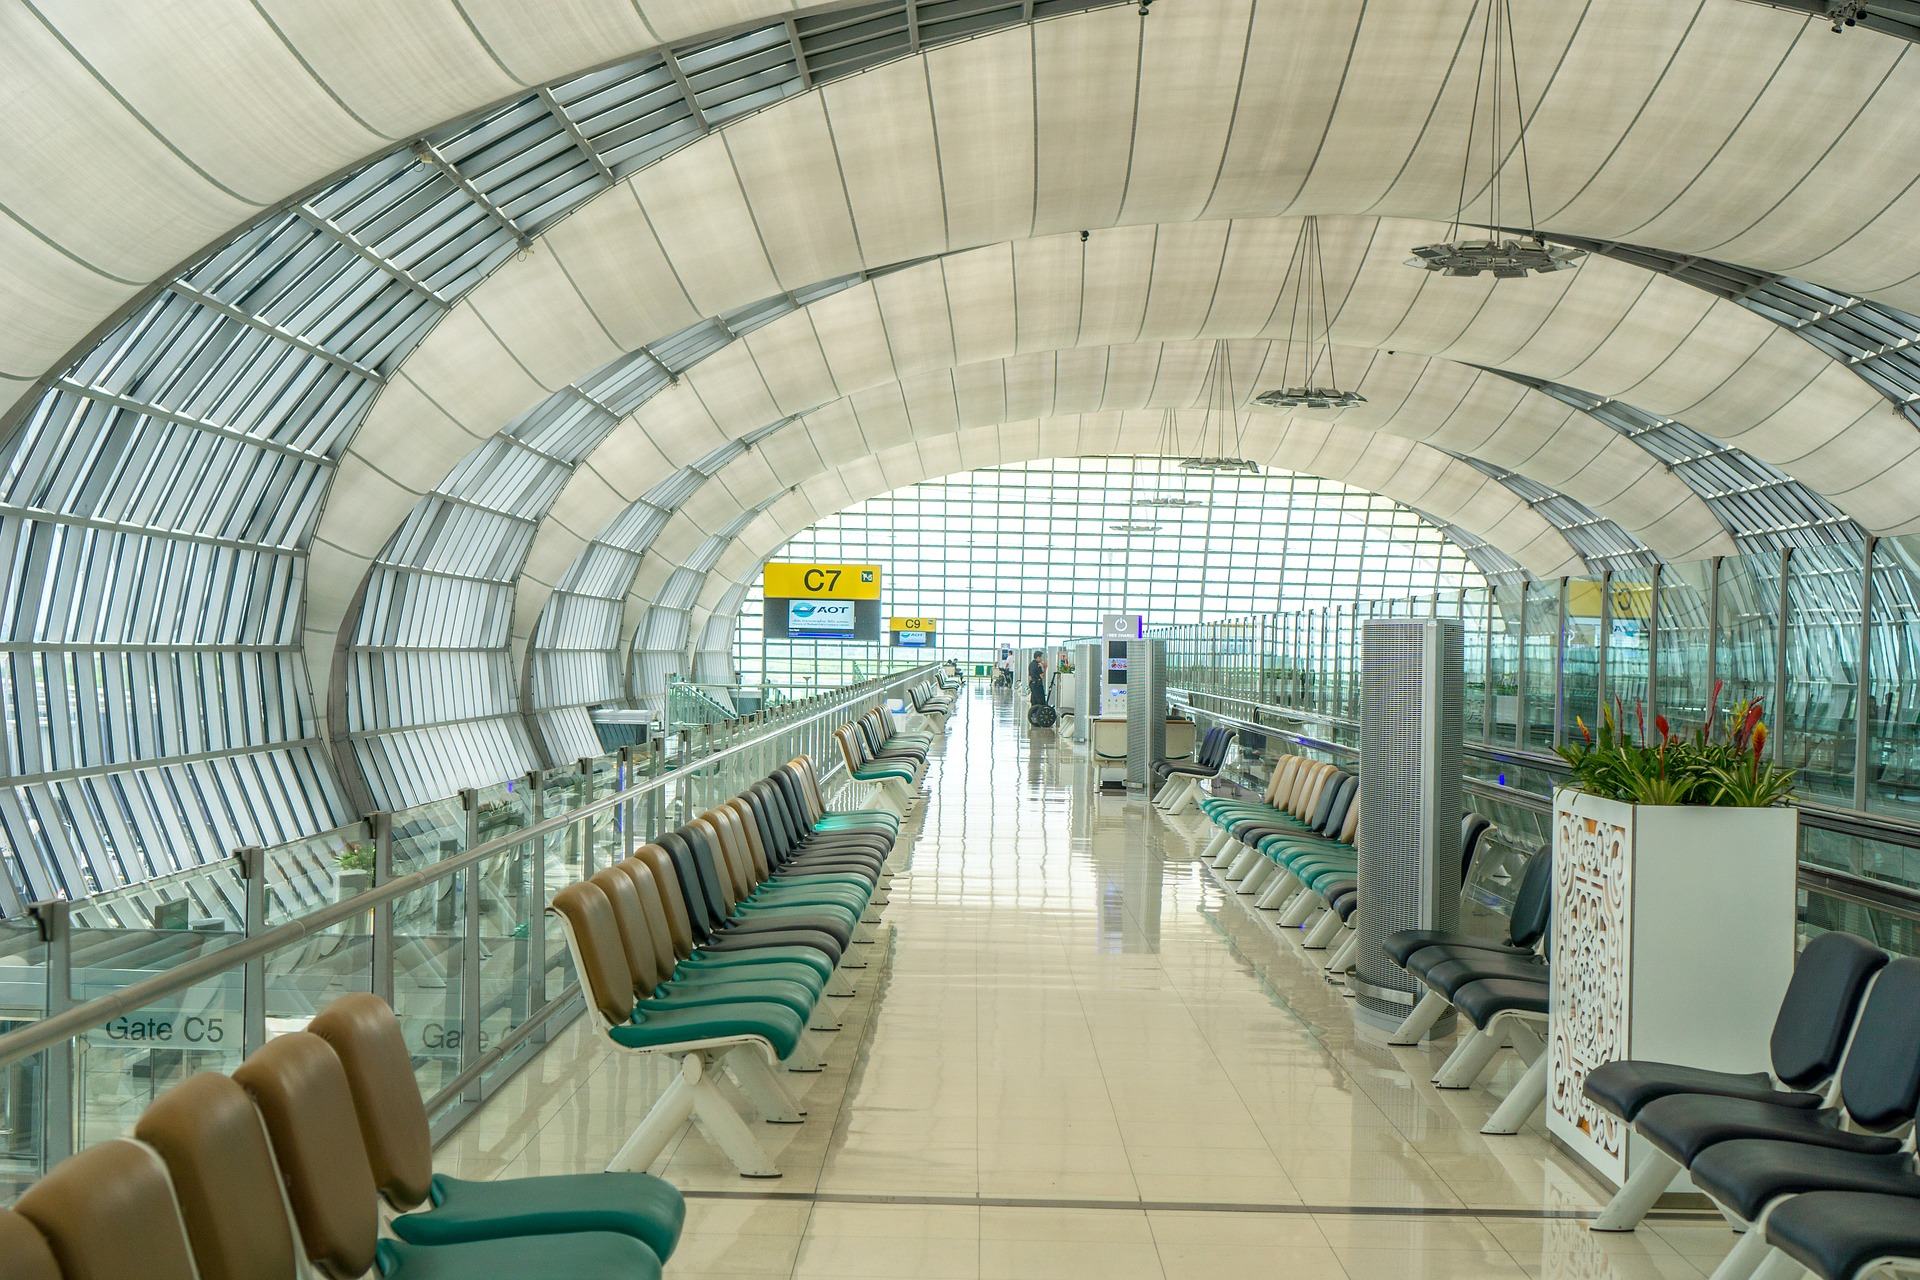 What the pros and cons of working in an Airport?